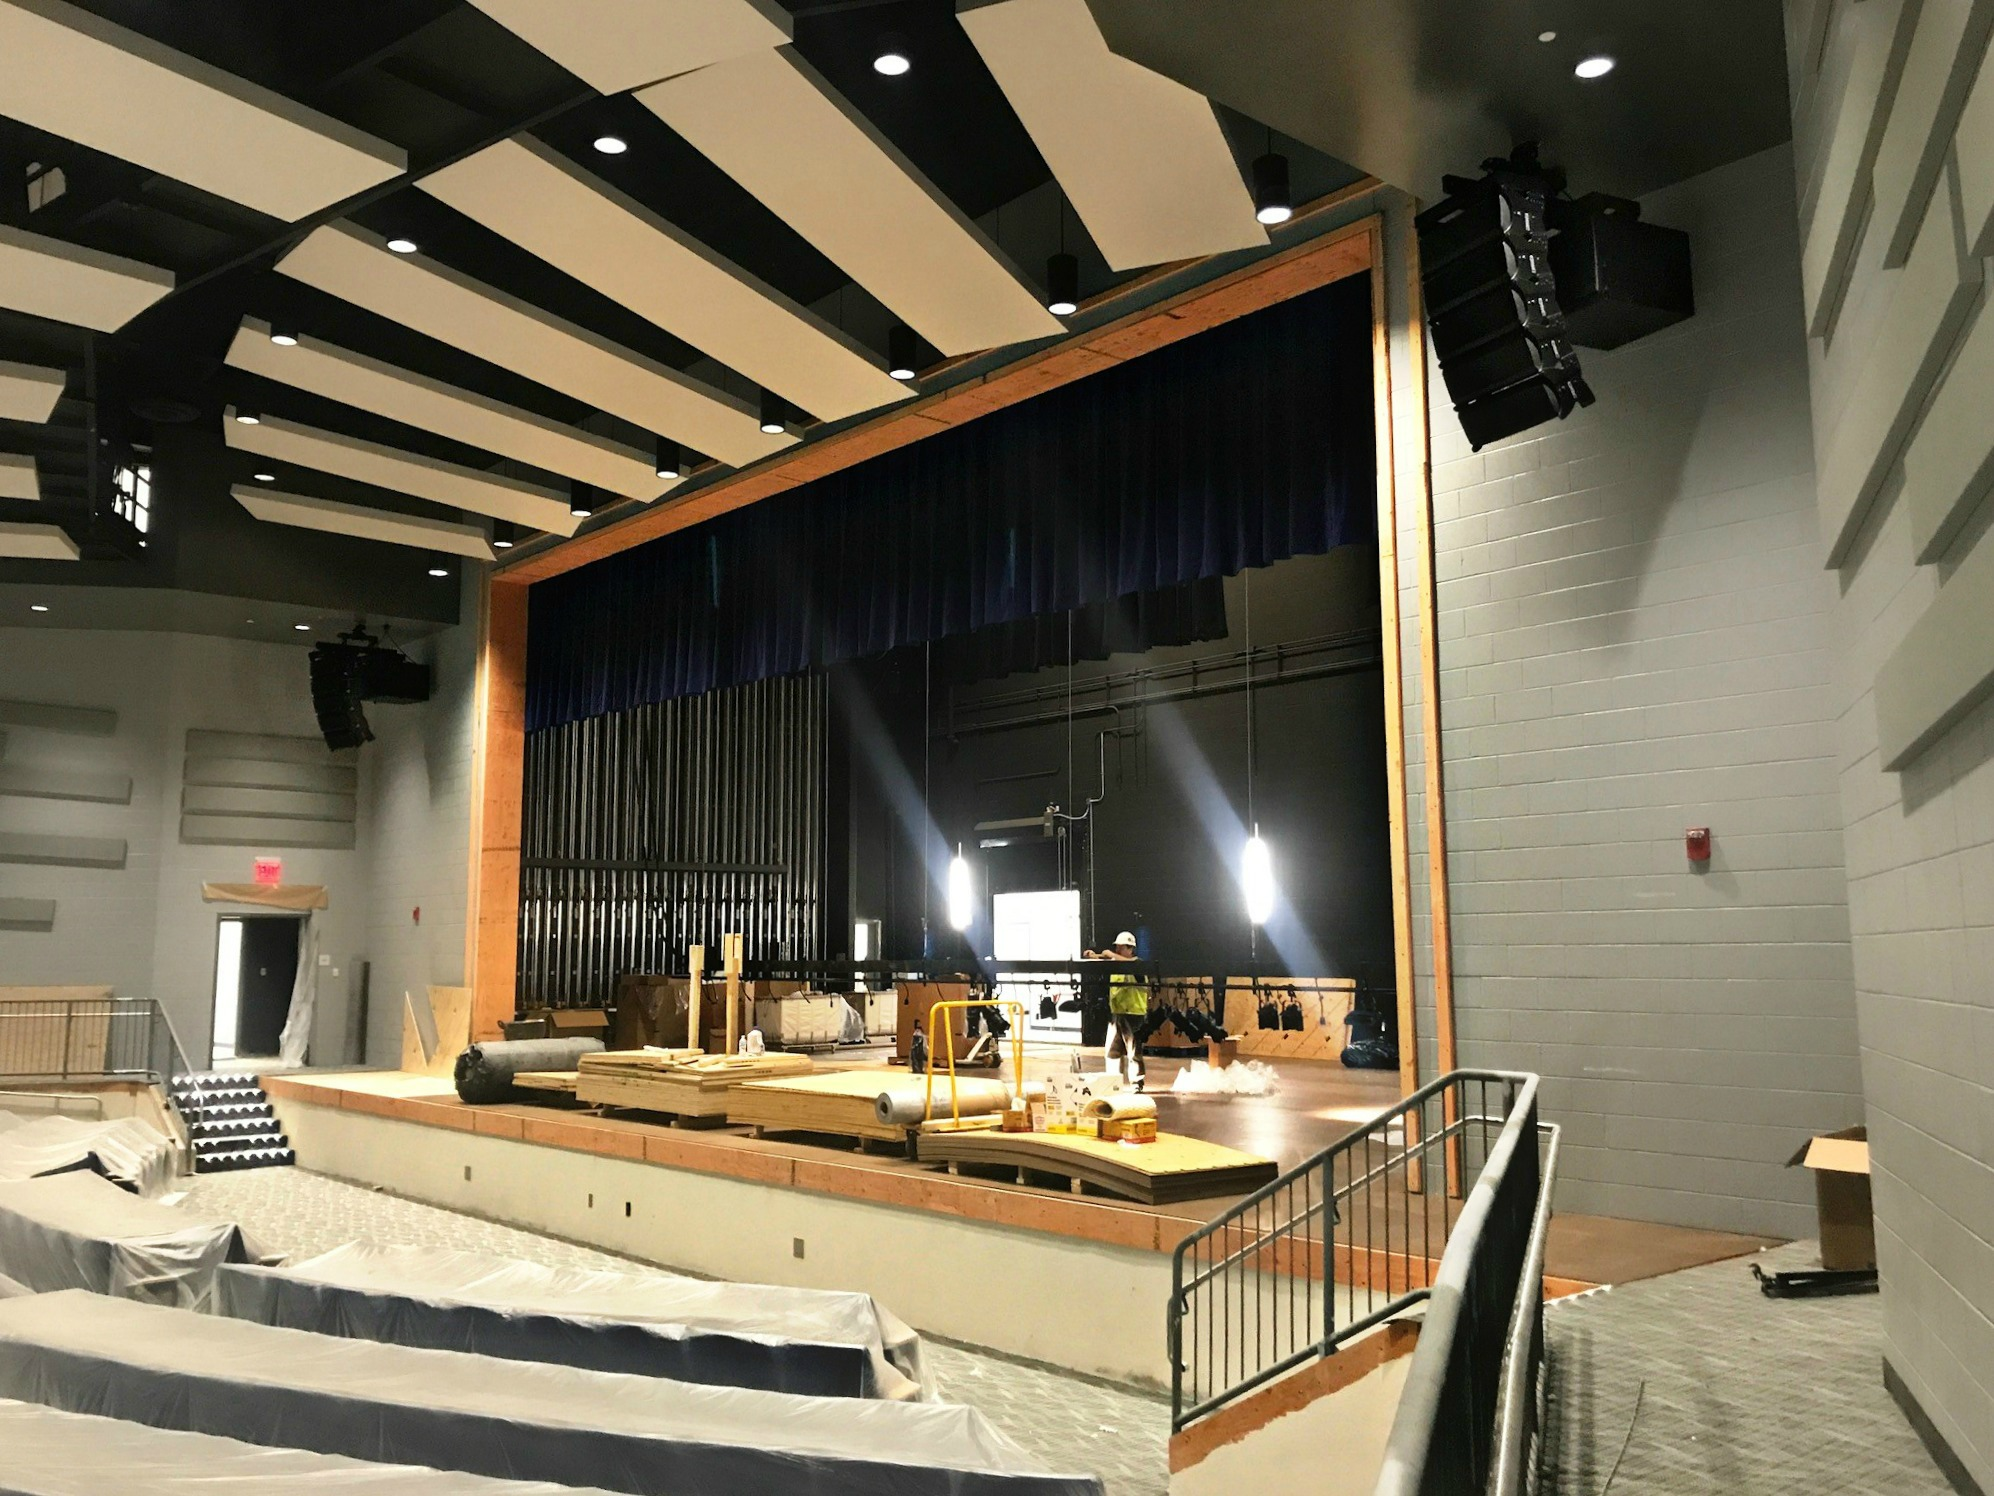 Polar Focus rigging for West Claremont HS